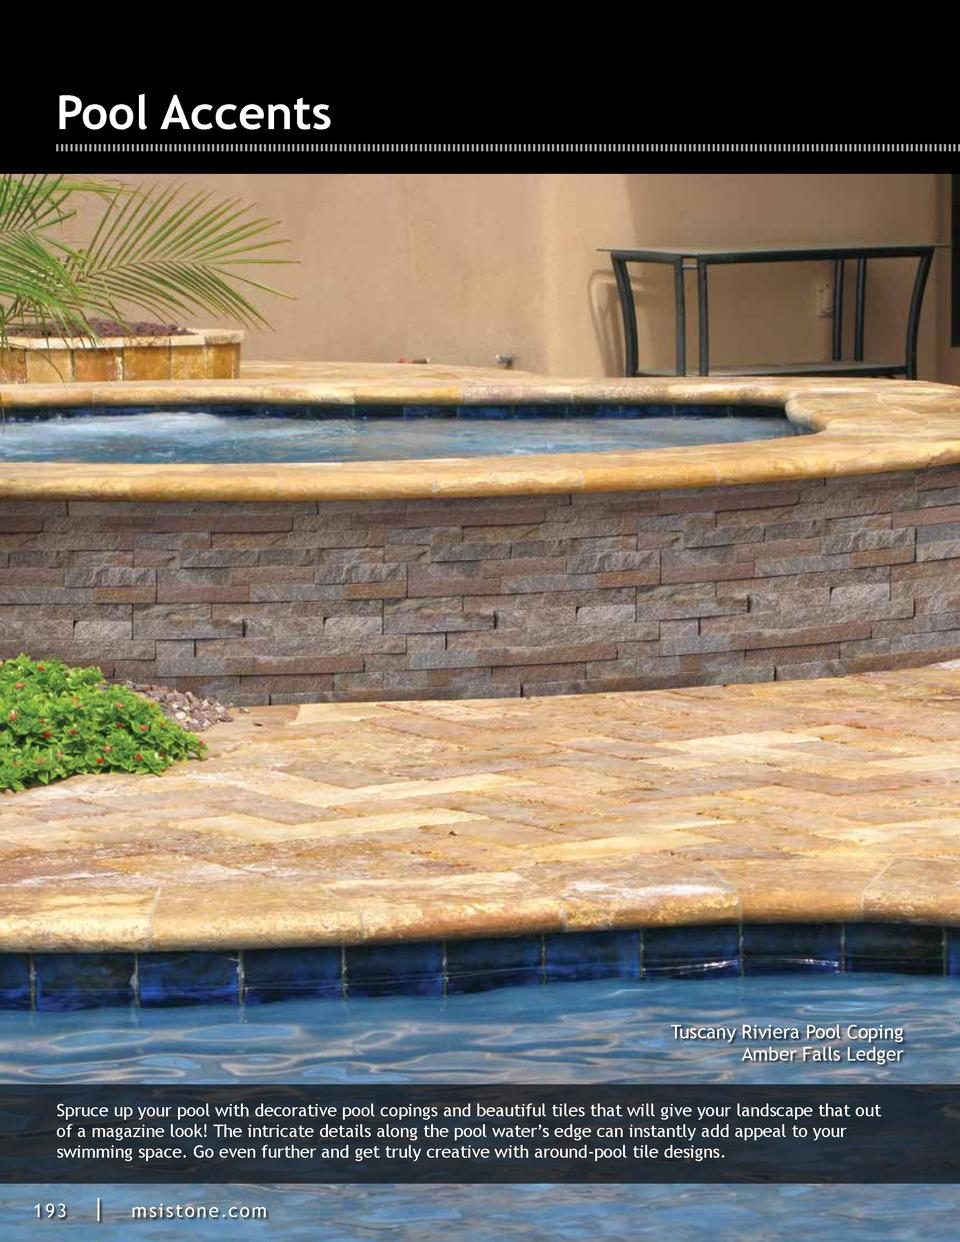 Pool Accents  Tuscany Riviera Pool Coping Amber Falls Ledger Spruce up your pool with decorative pool copings and beautifu...